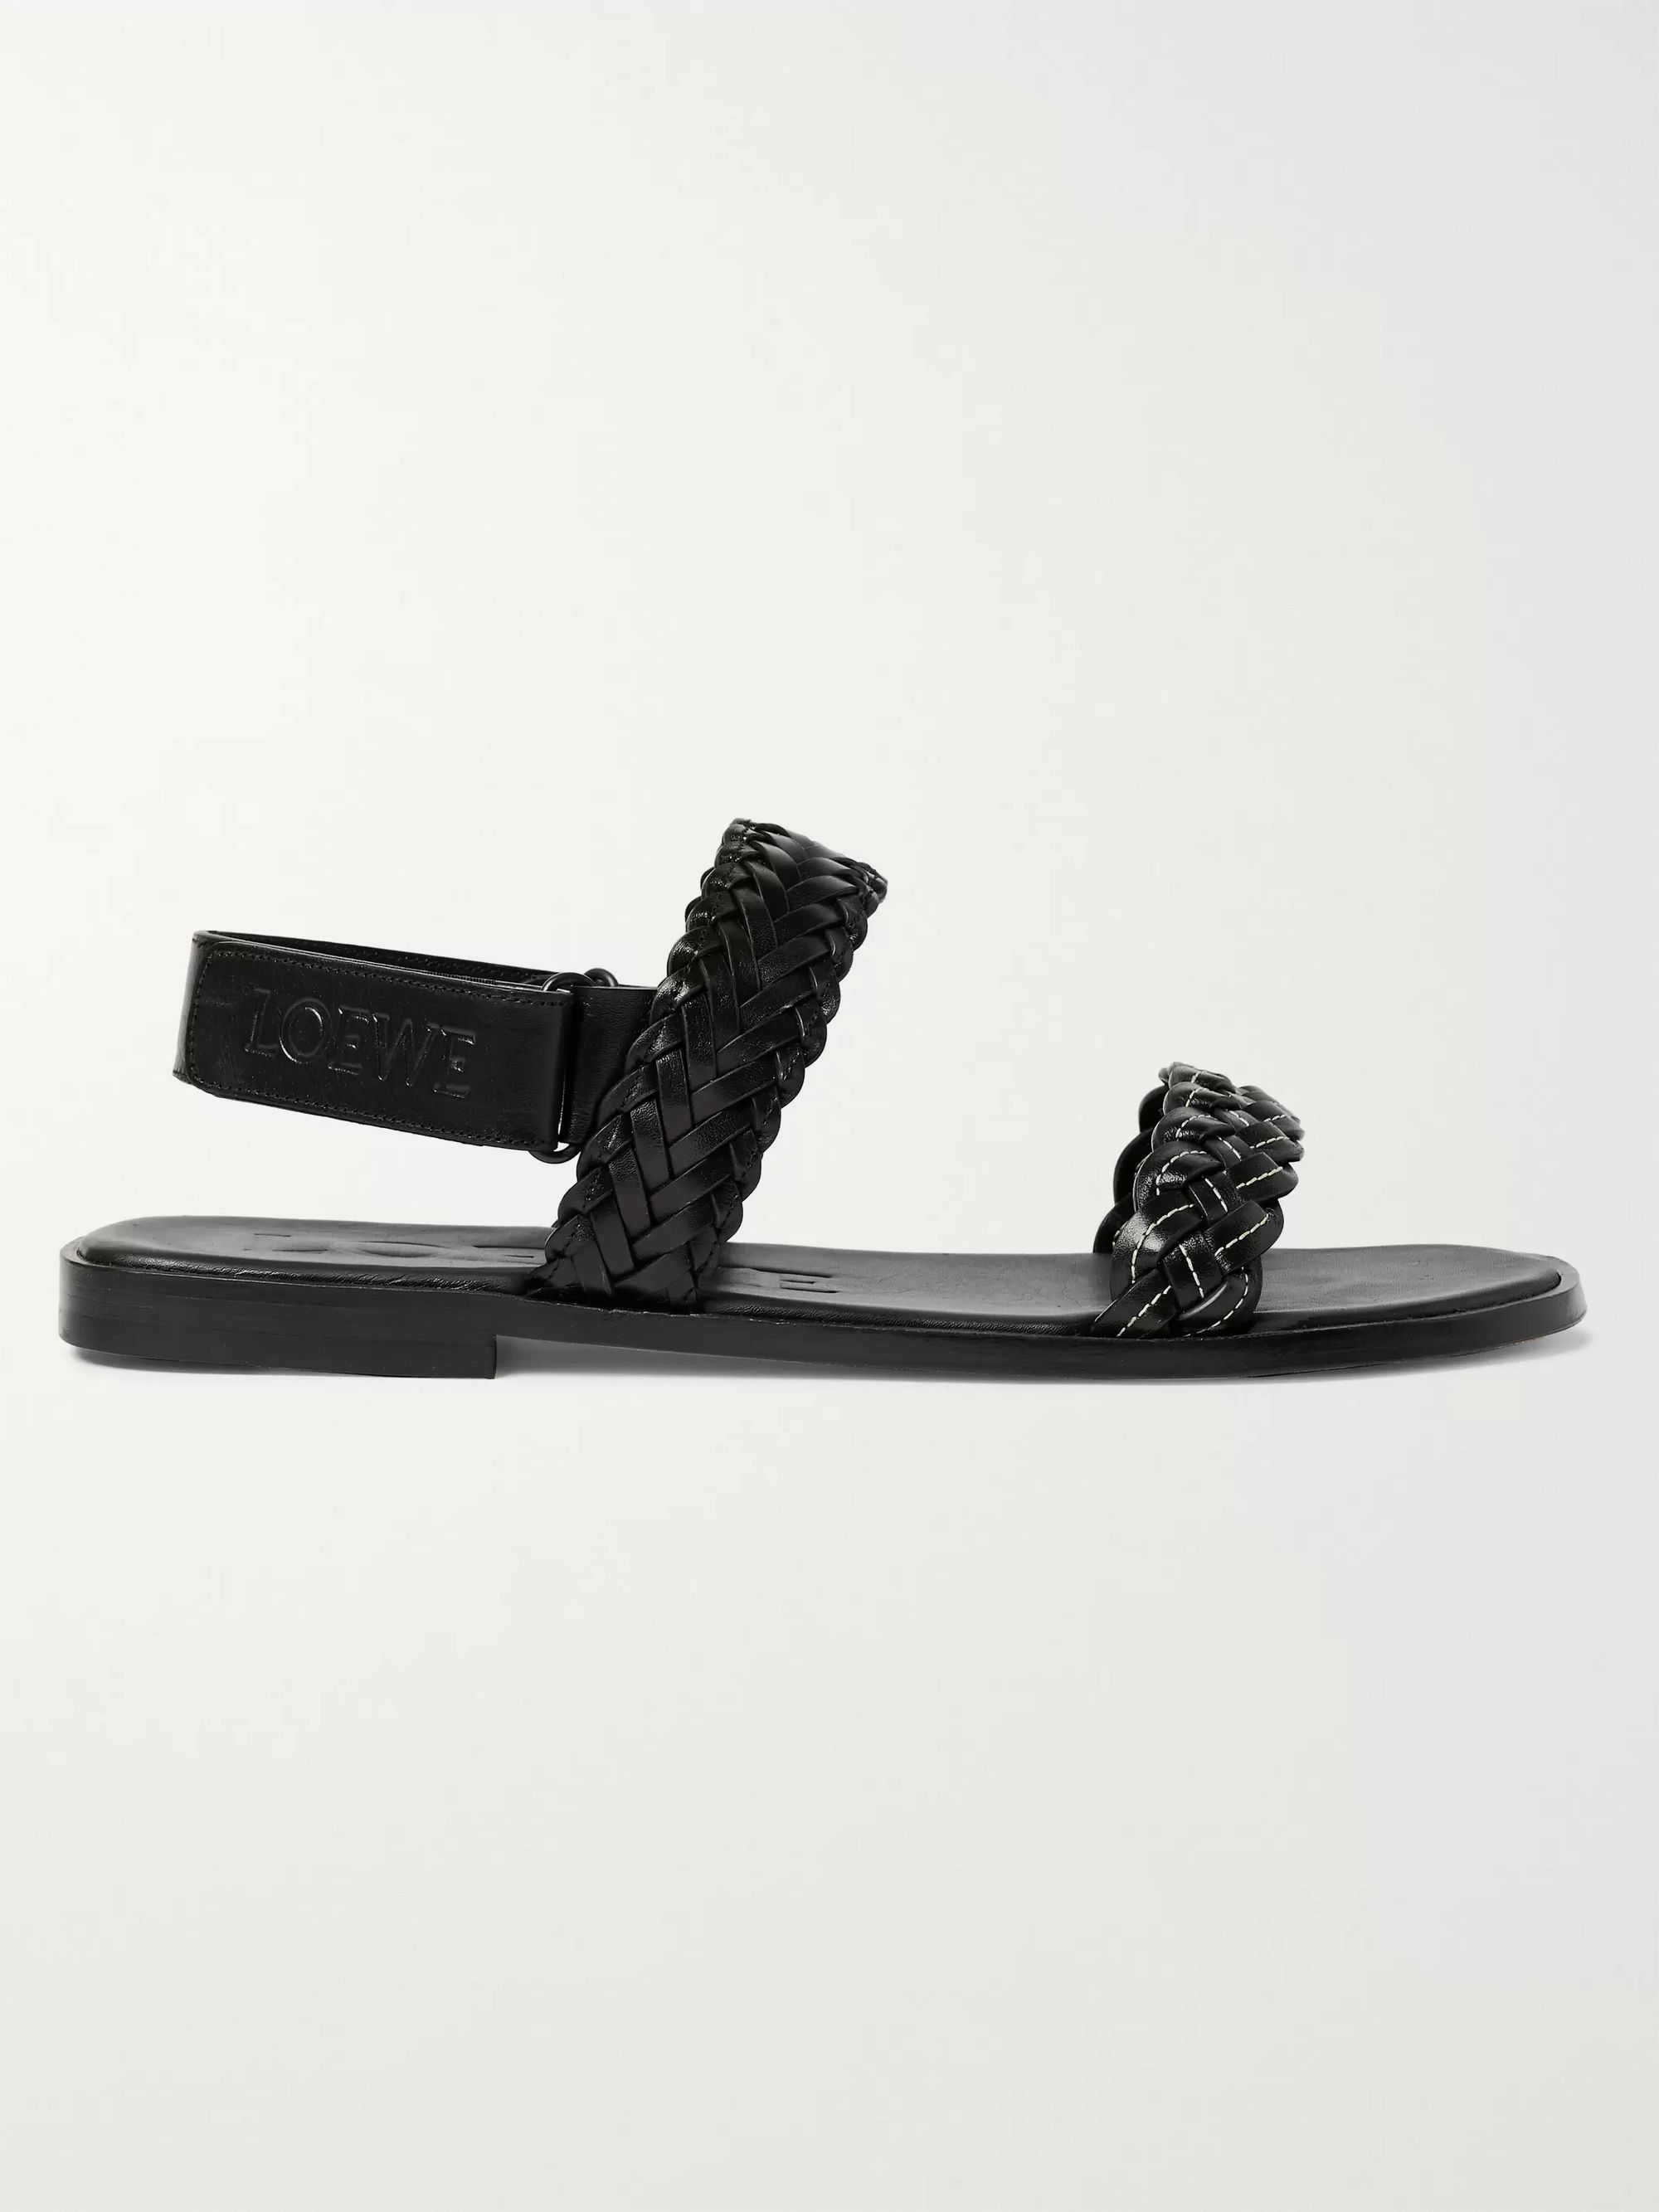 Loewe + Paula's Ibiza Braided Leather Sandals